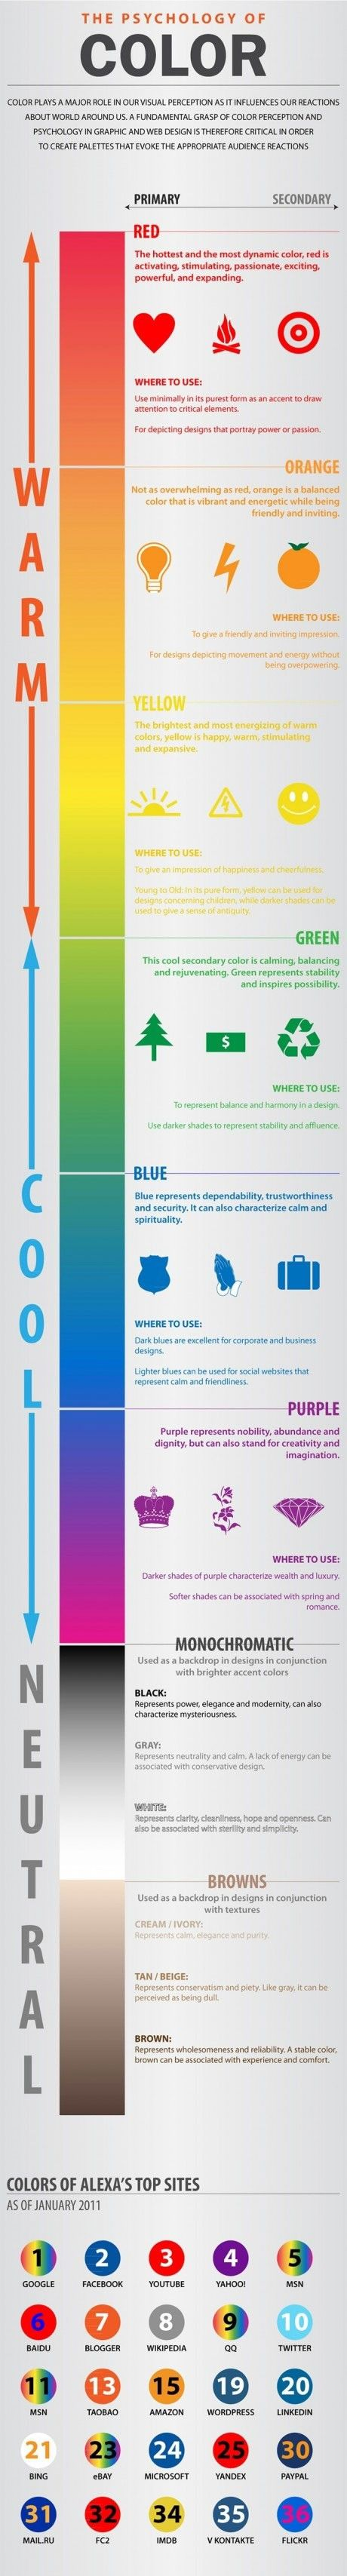 Psychology of colour info graphic